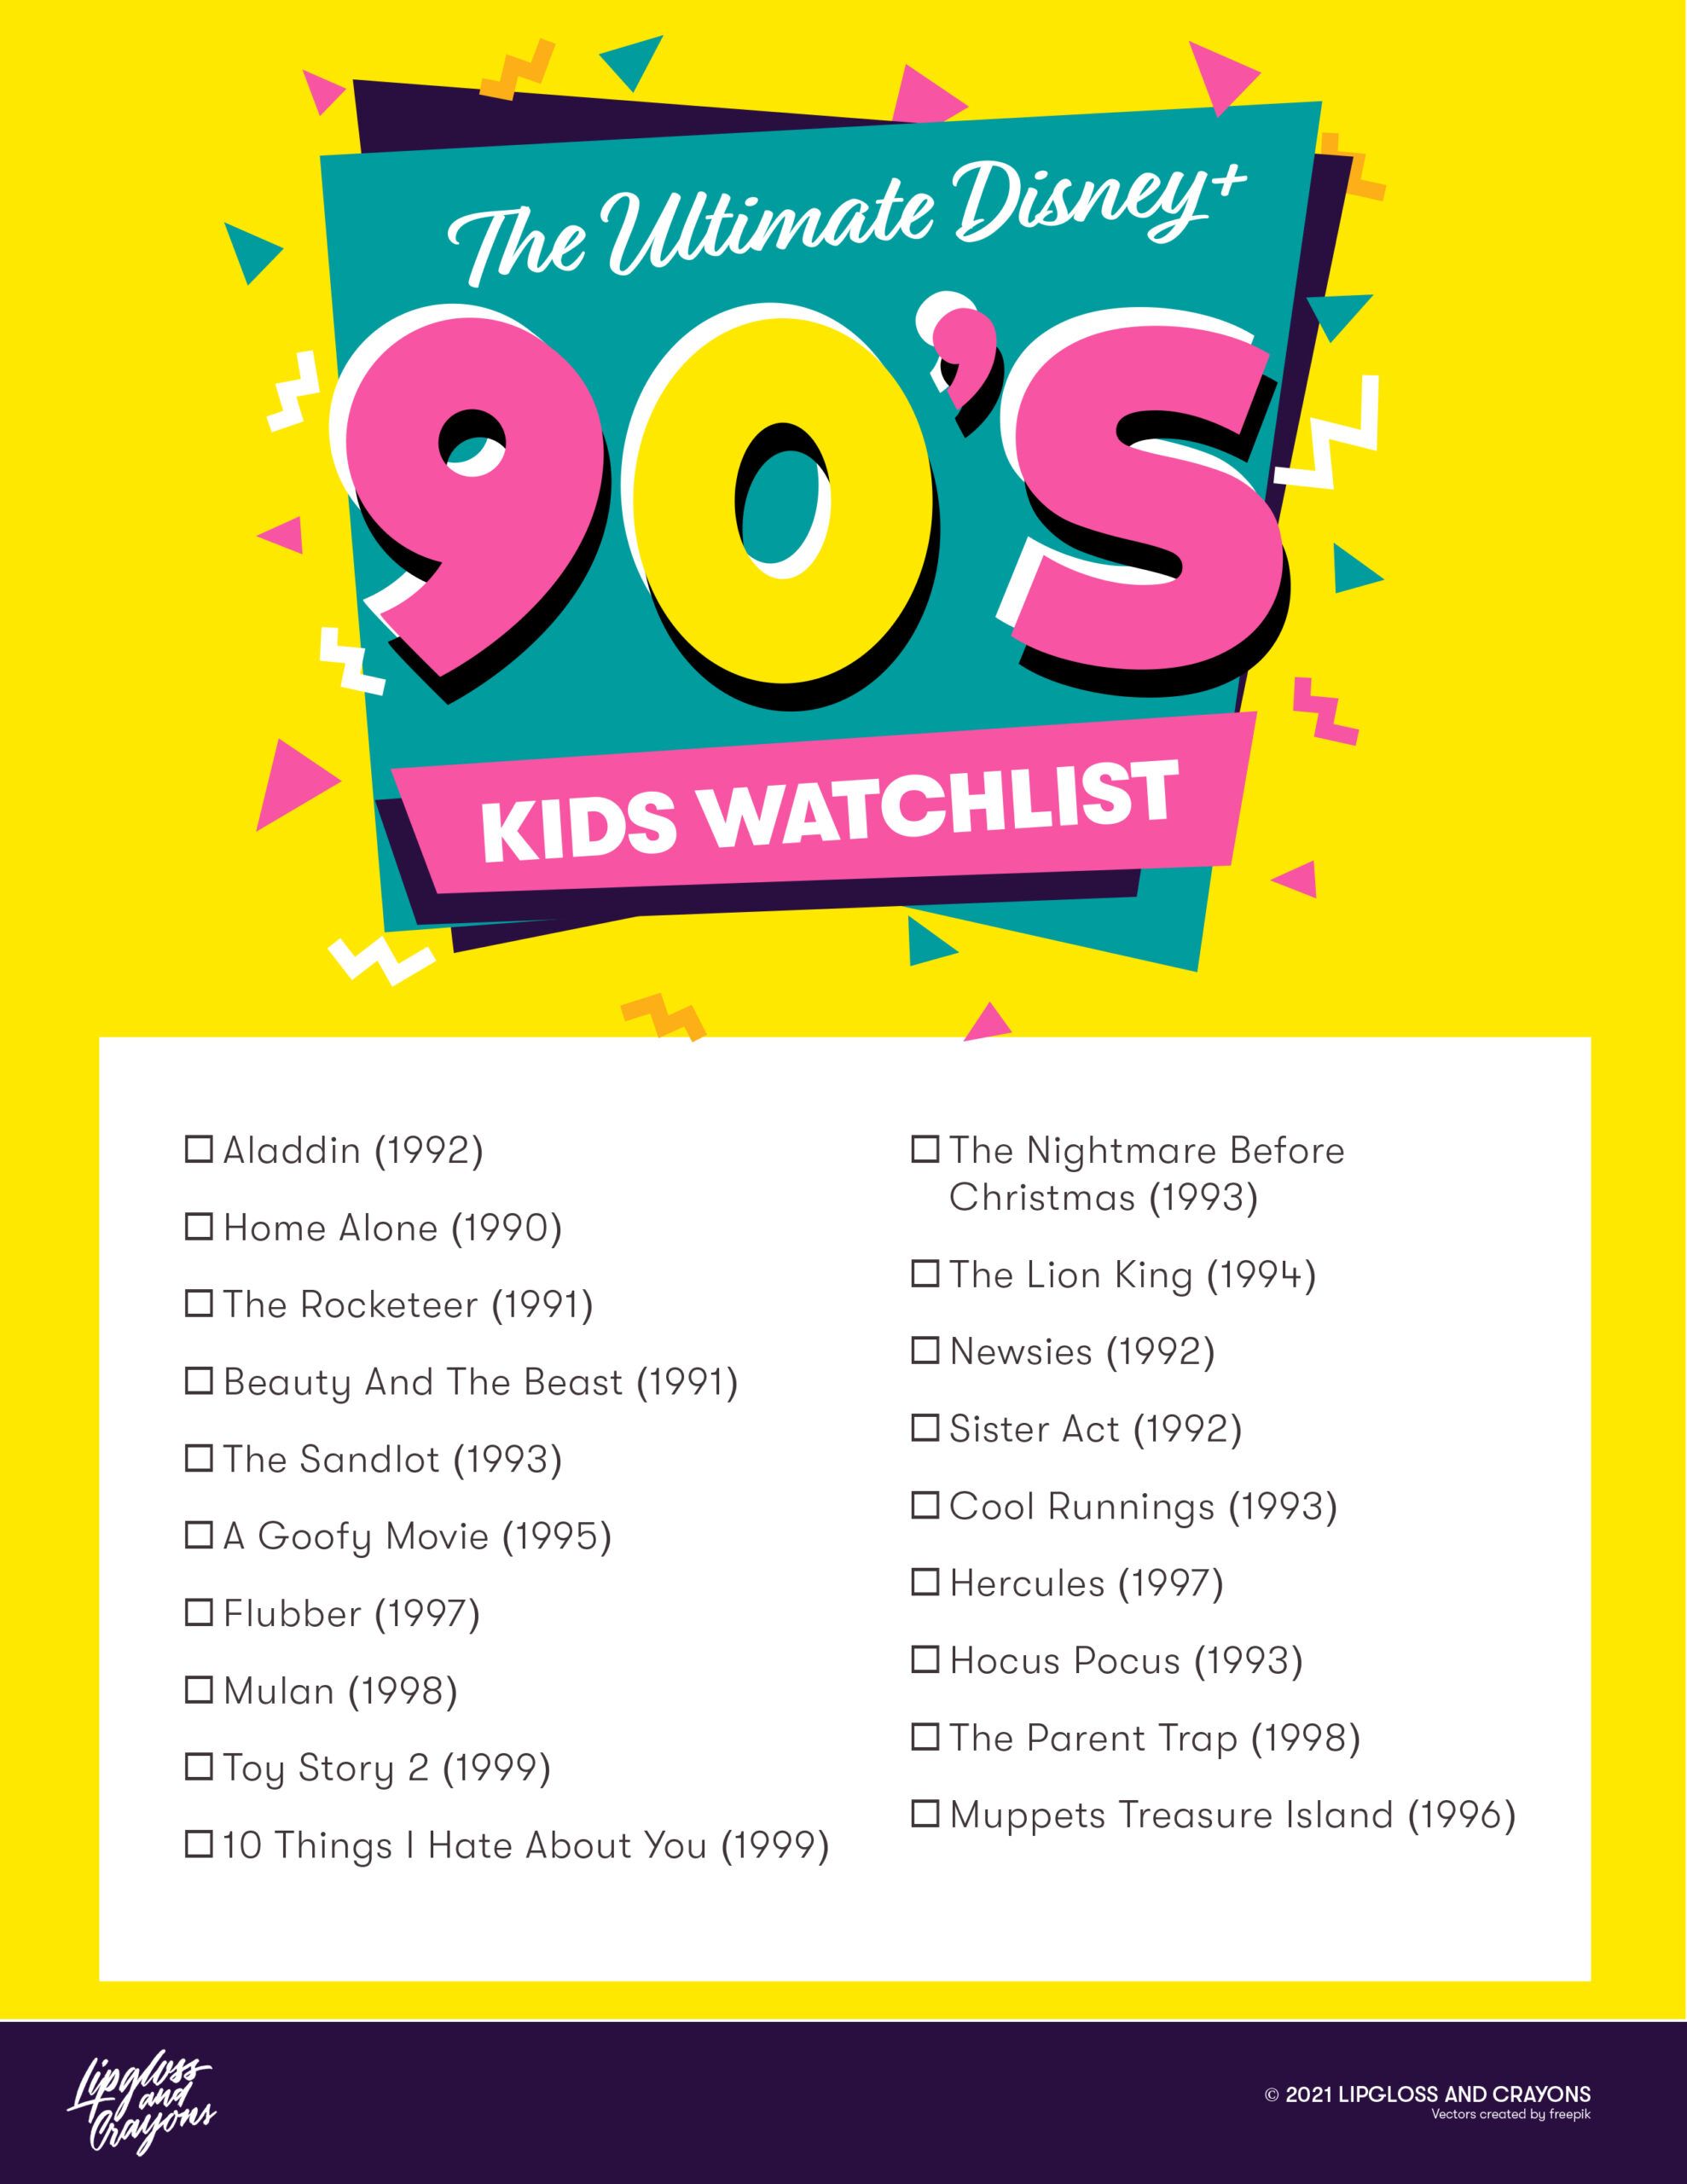 Love Disney Plus Watchlists? This? Is the Ultimate Disney Watch list for 90s kids.....and every film listed is on Disney+ now!